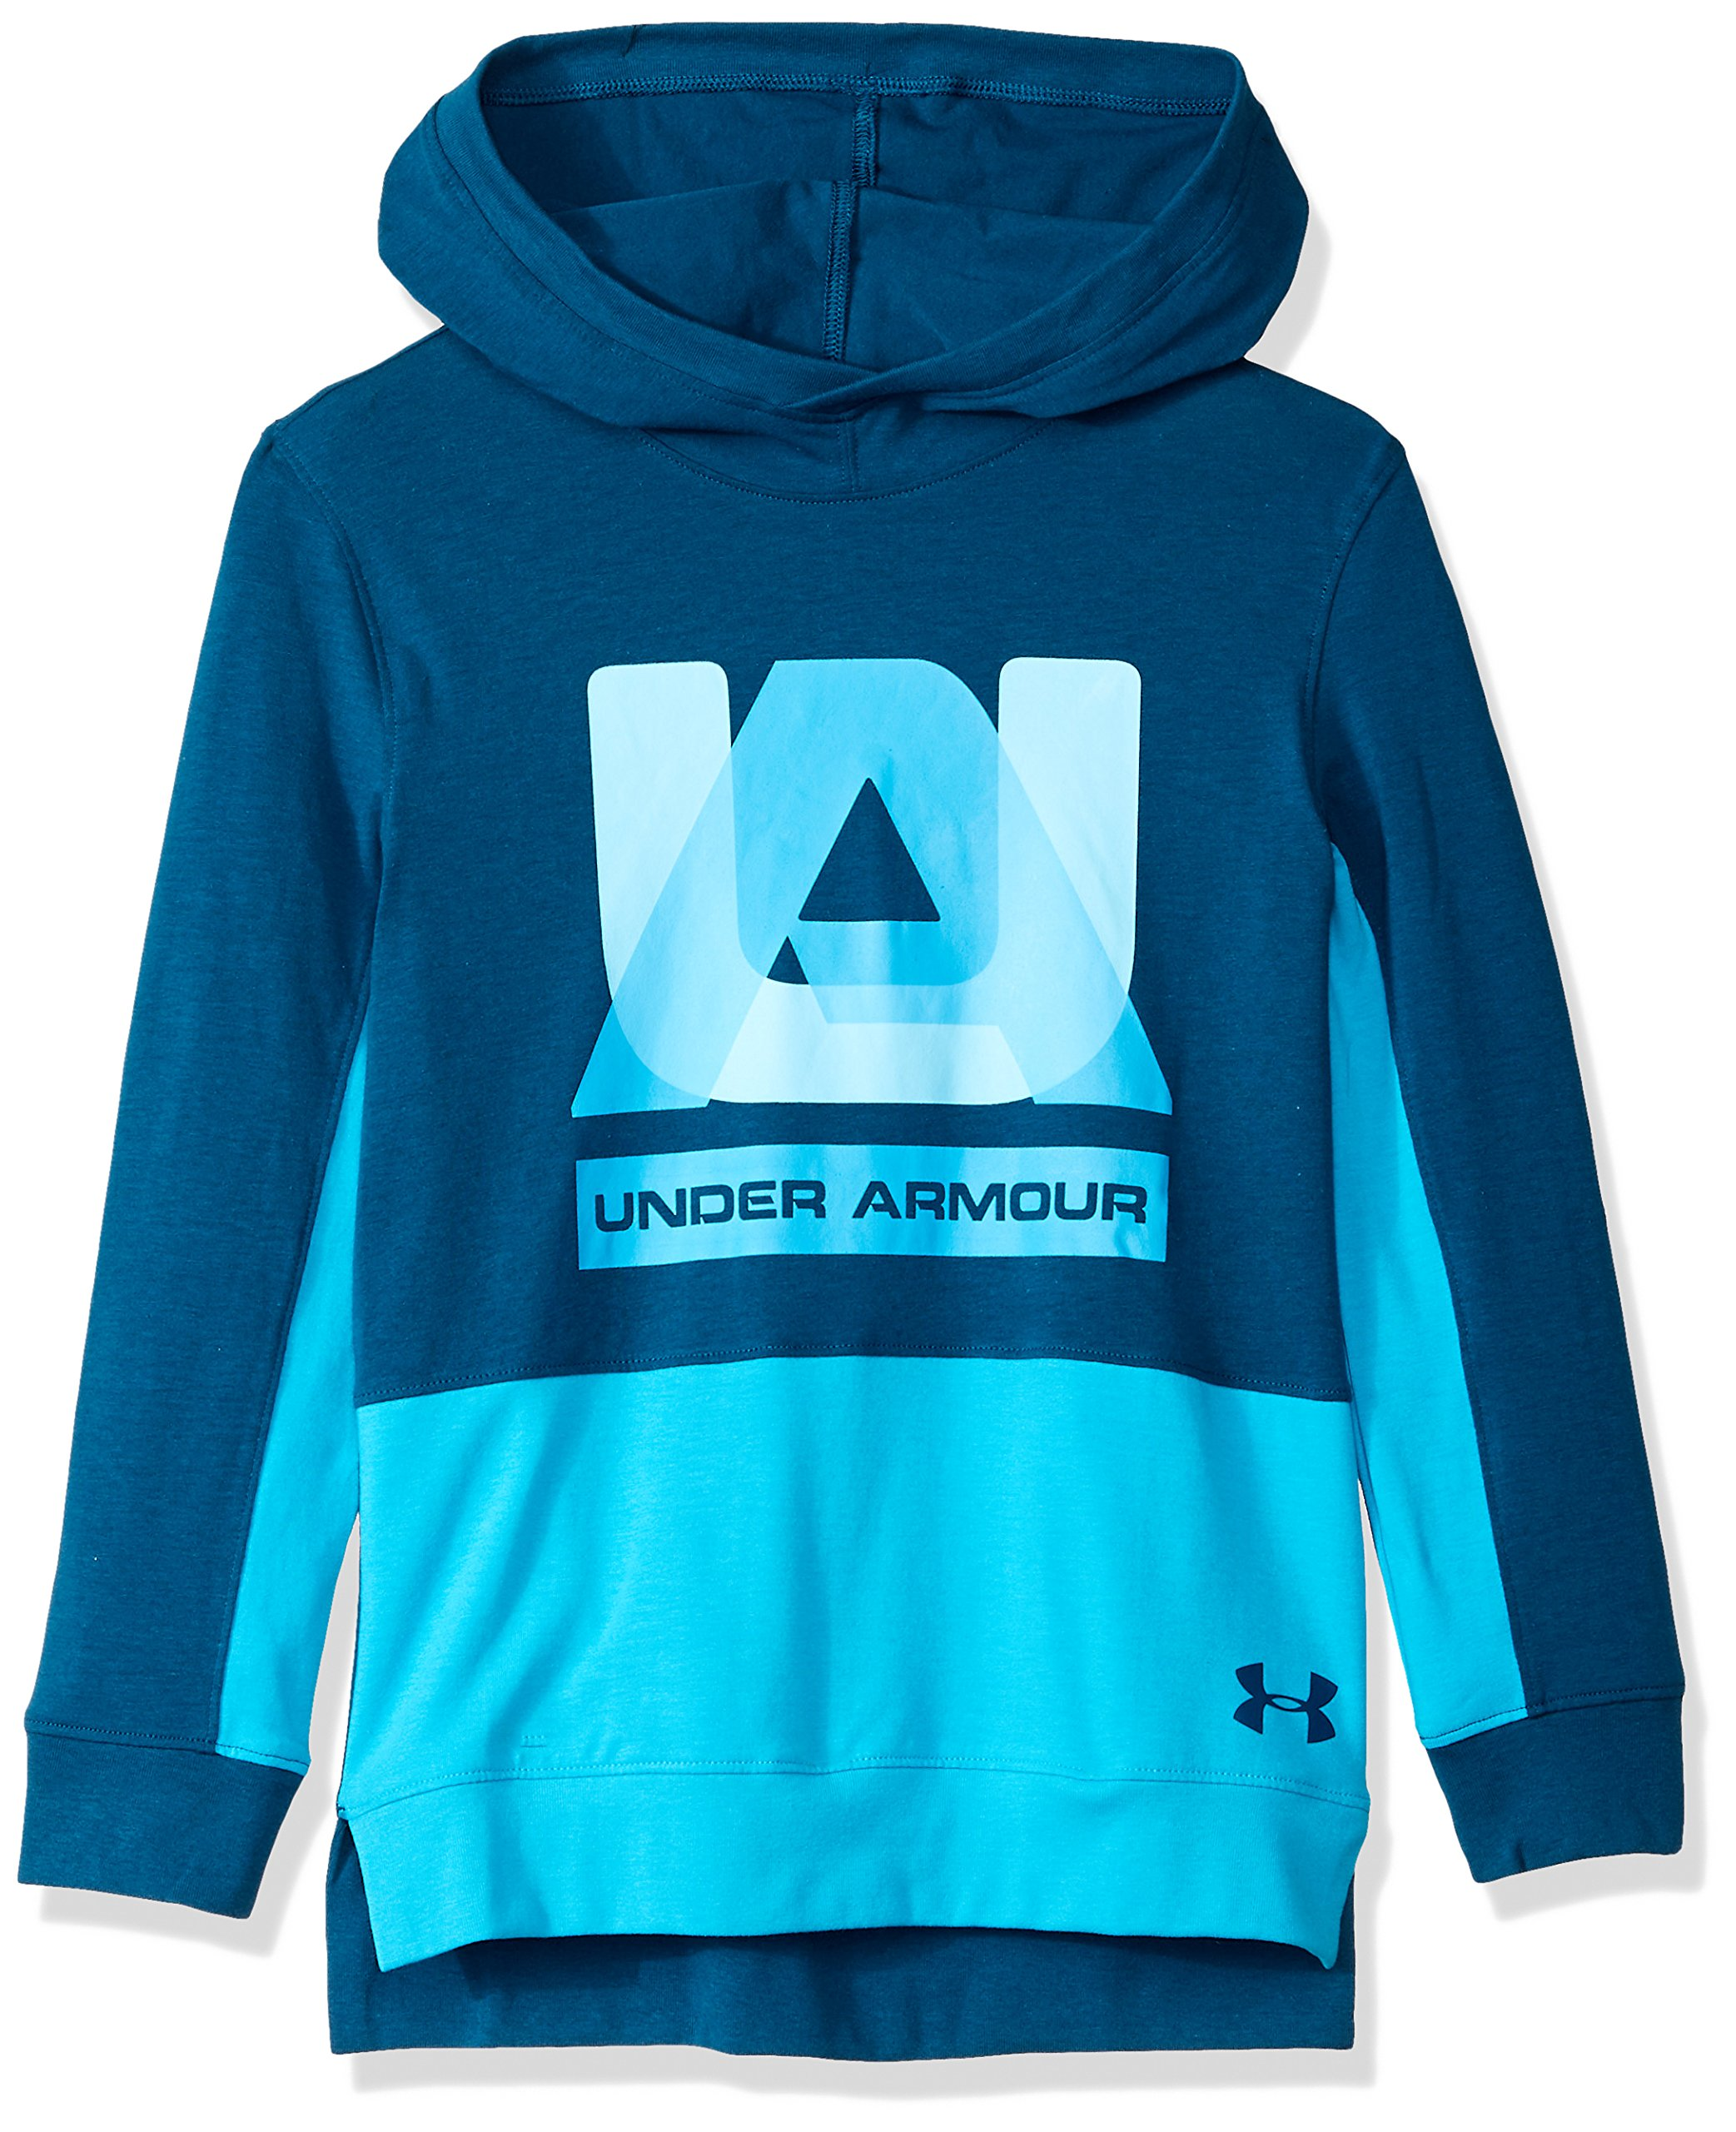 Under Armour Boys sportstyle Hoodie, Techno Teal (489)/Techno Teal, Youth Small by Under Armour